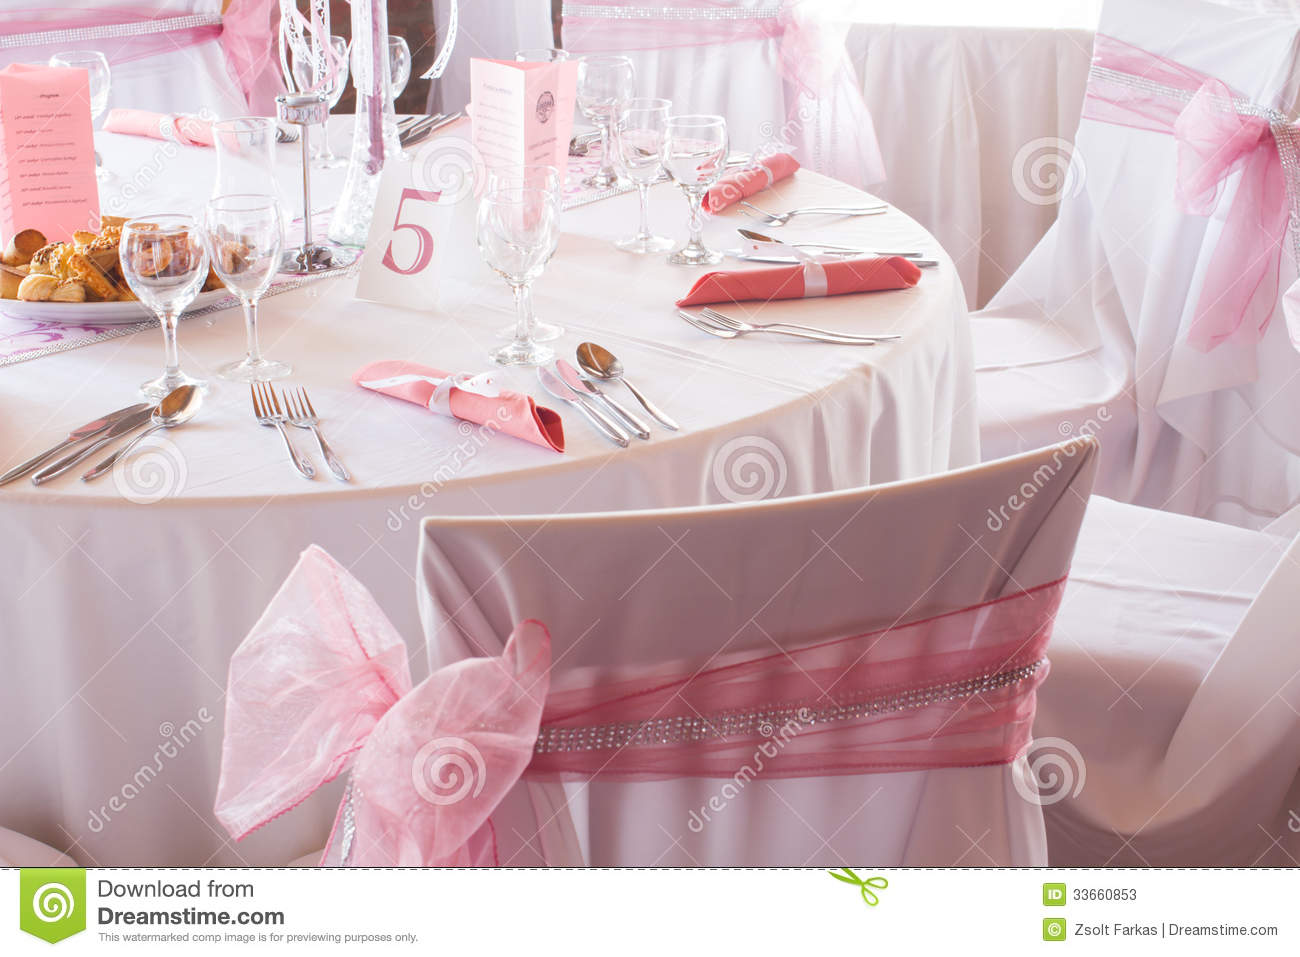 Gorgeous Wedding Chair And Table Setting For Fine Dining  : gorgeous wedding chair table setting fine dining white pink bow jumpered elegant set 33660853 from www.dreamstime.com size 1300 x 957 jpeg 124kB